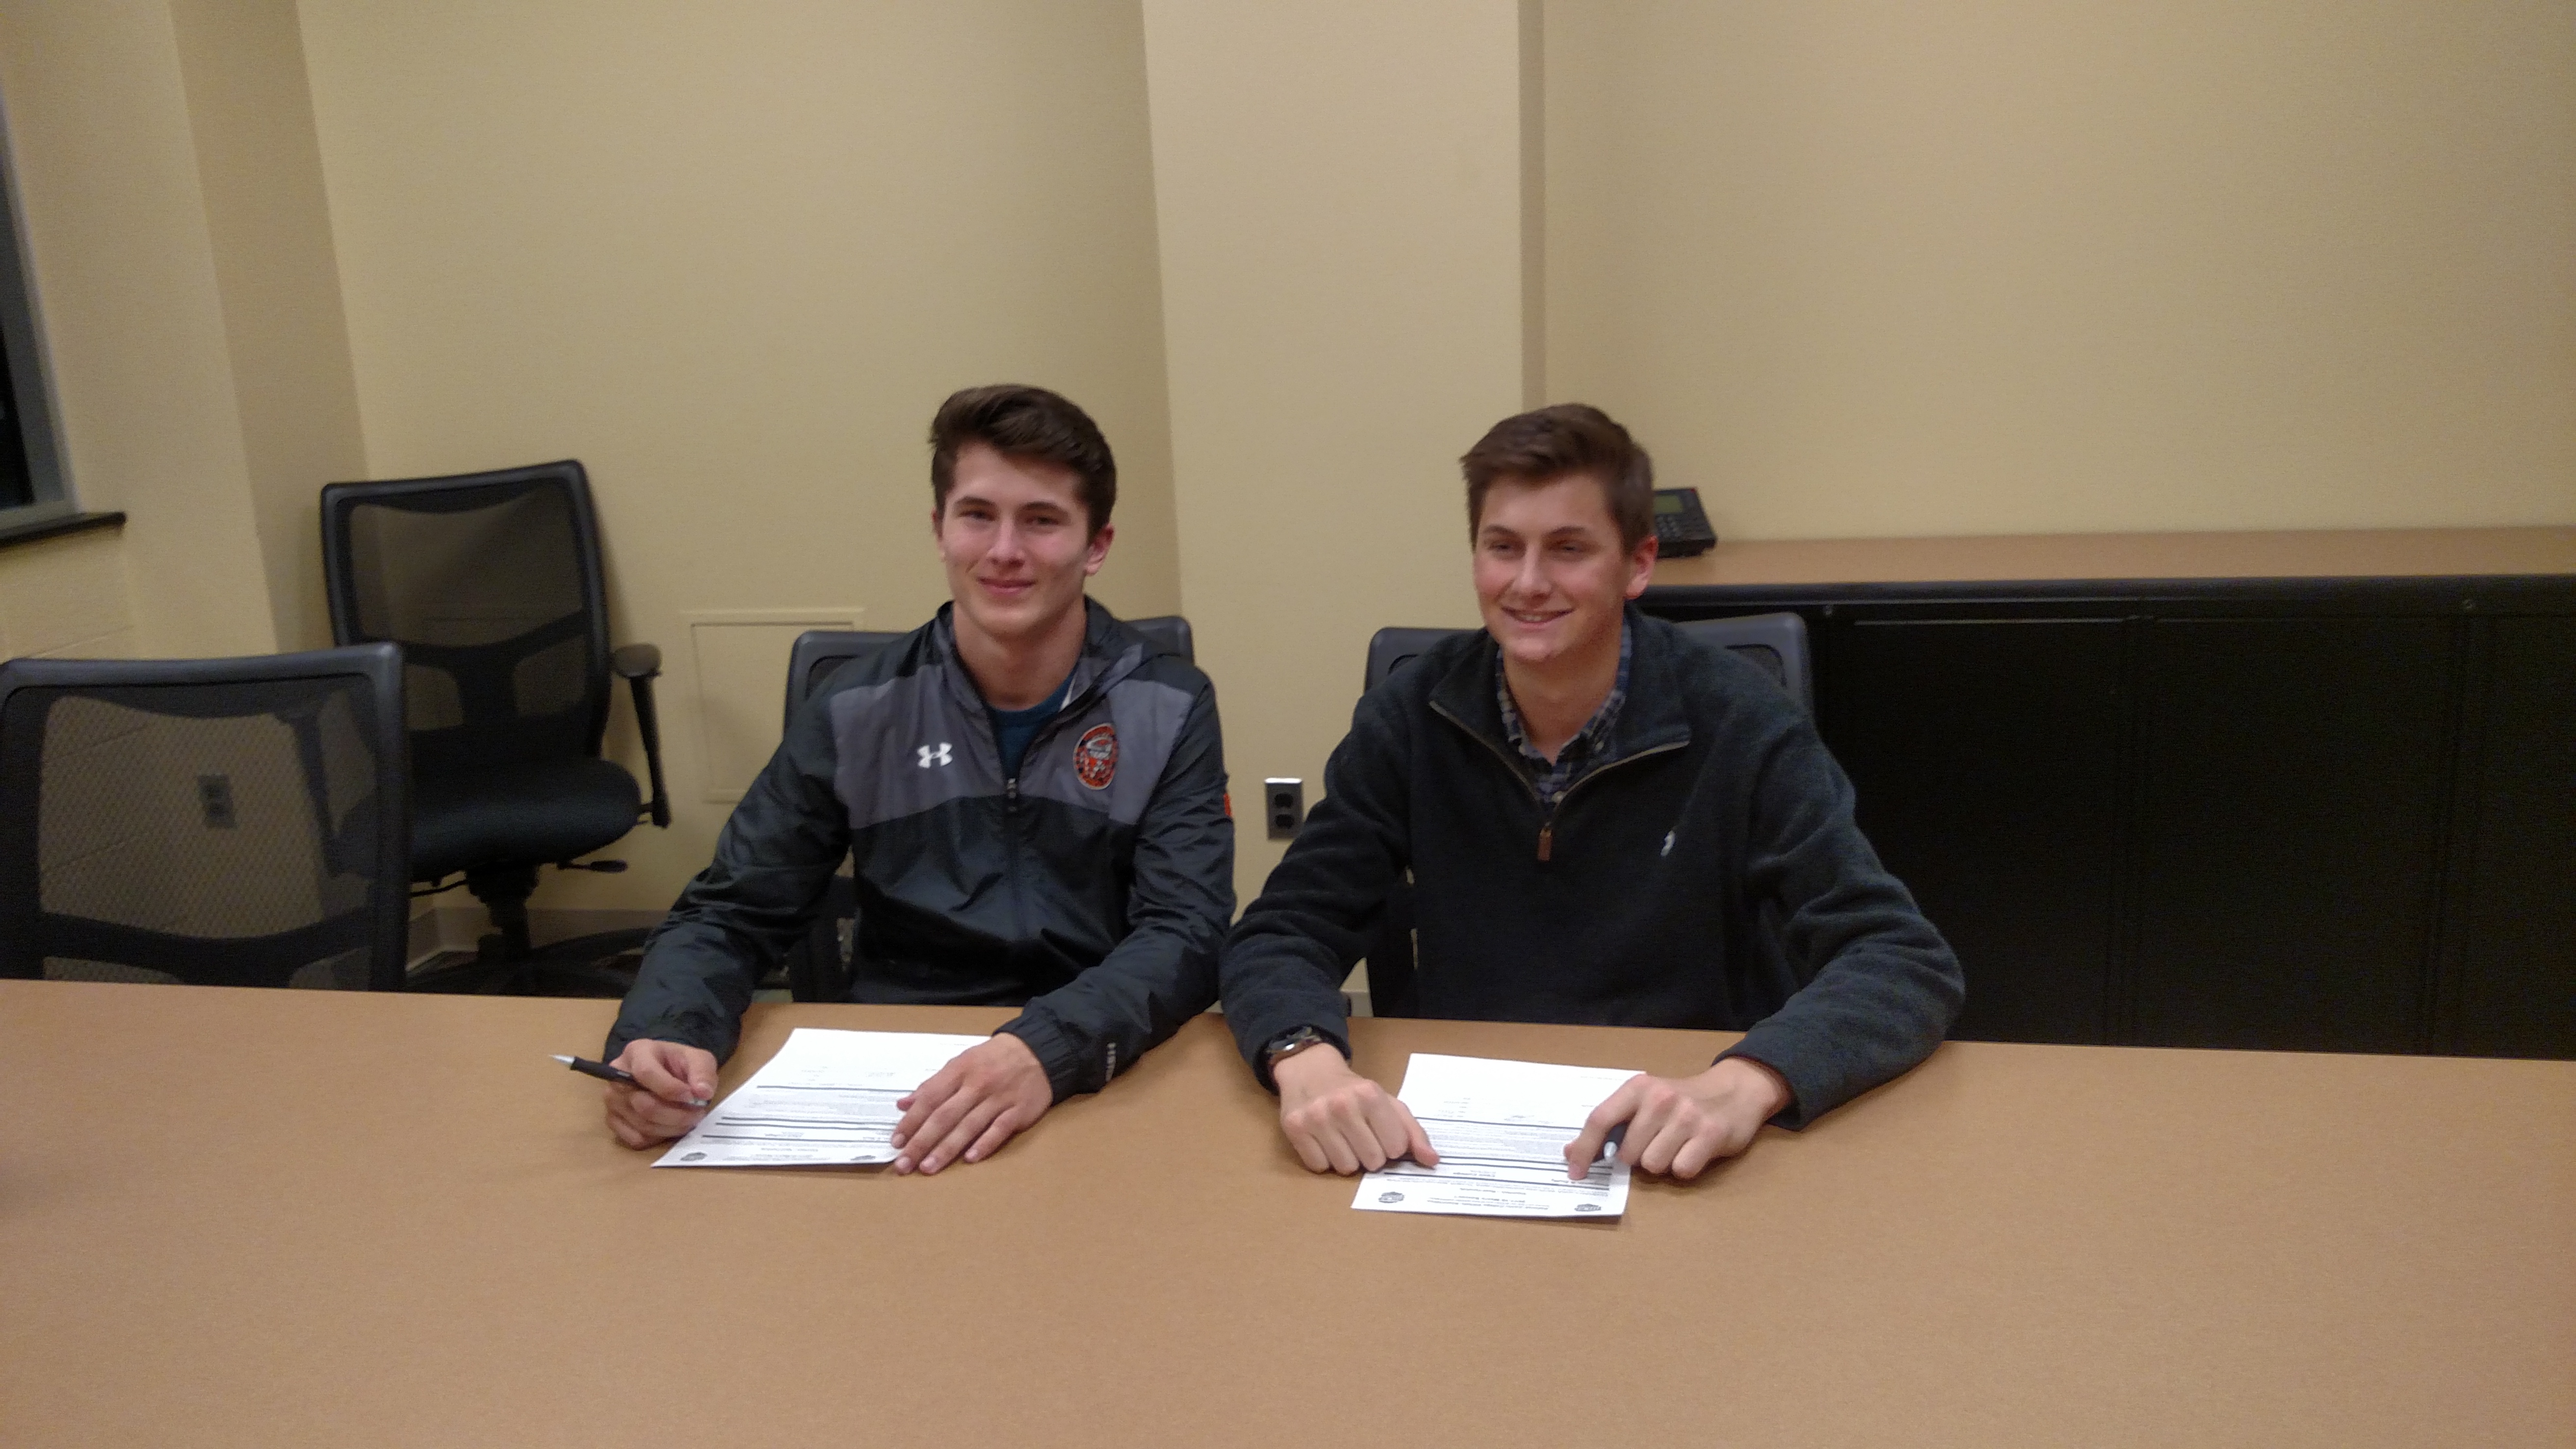 Colin Rich and Ben Duffy commit to Cecil College! Both are former Cecil Soccer Club players for the United. Congrats!